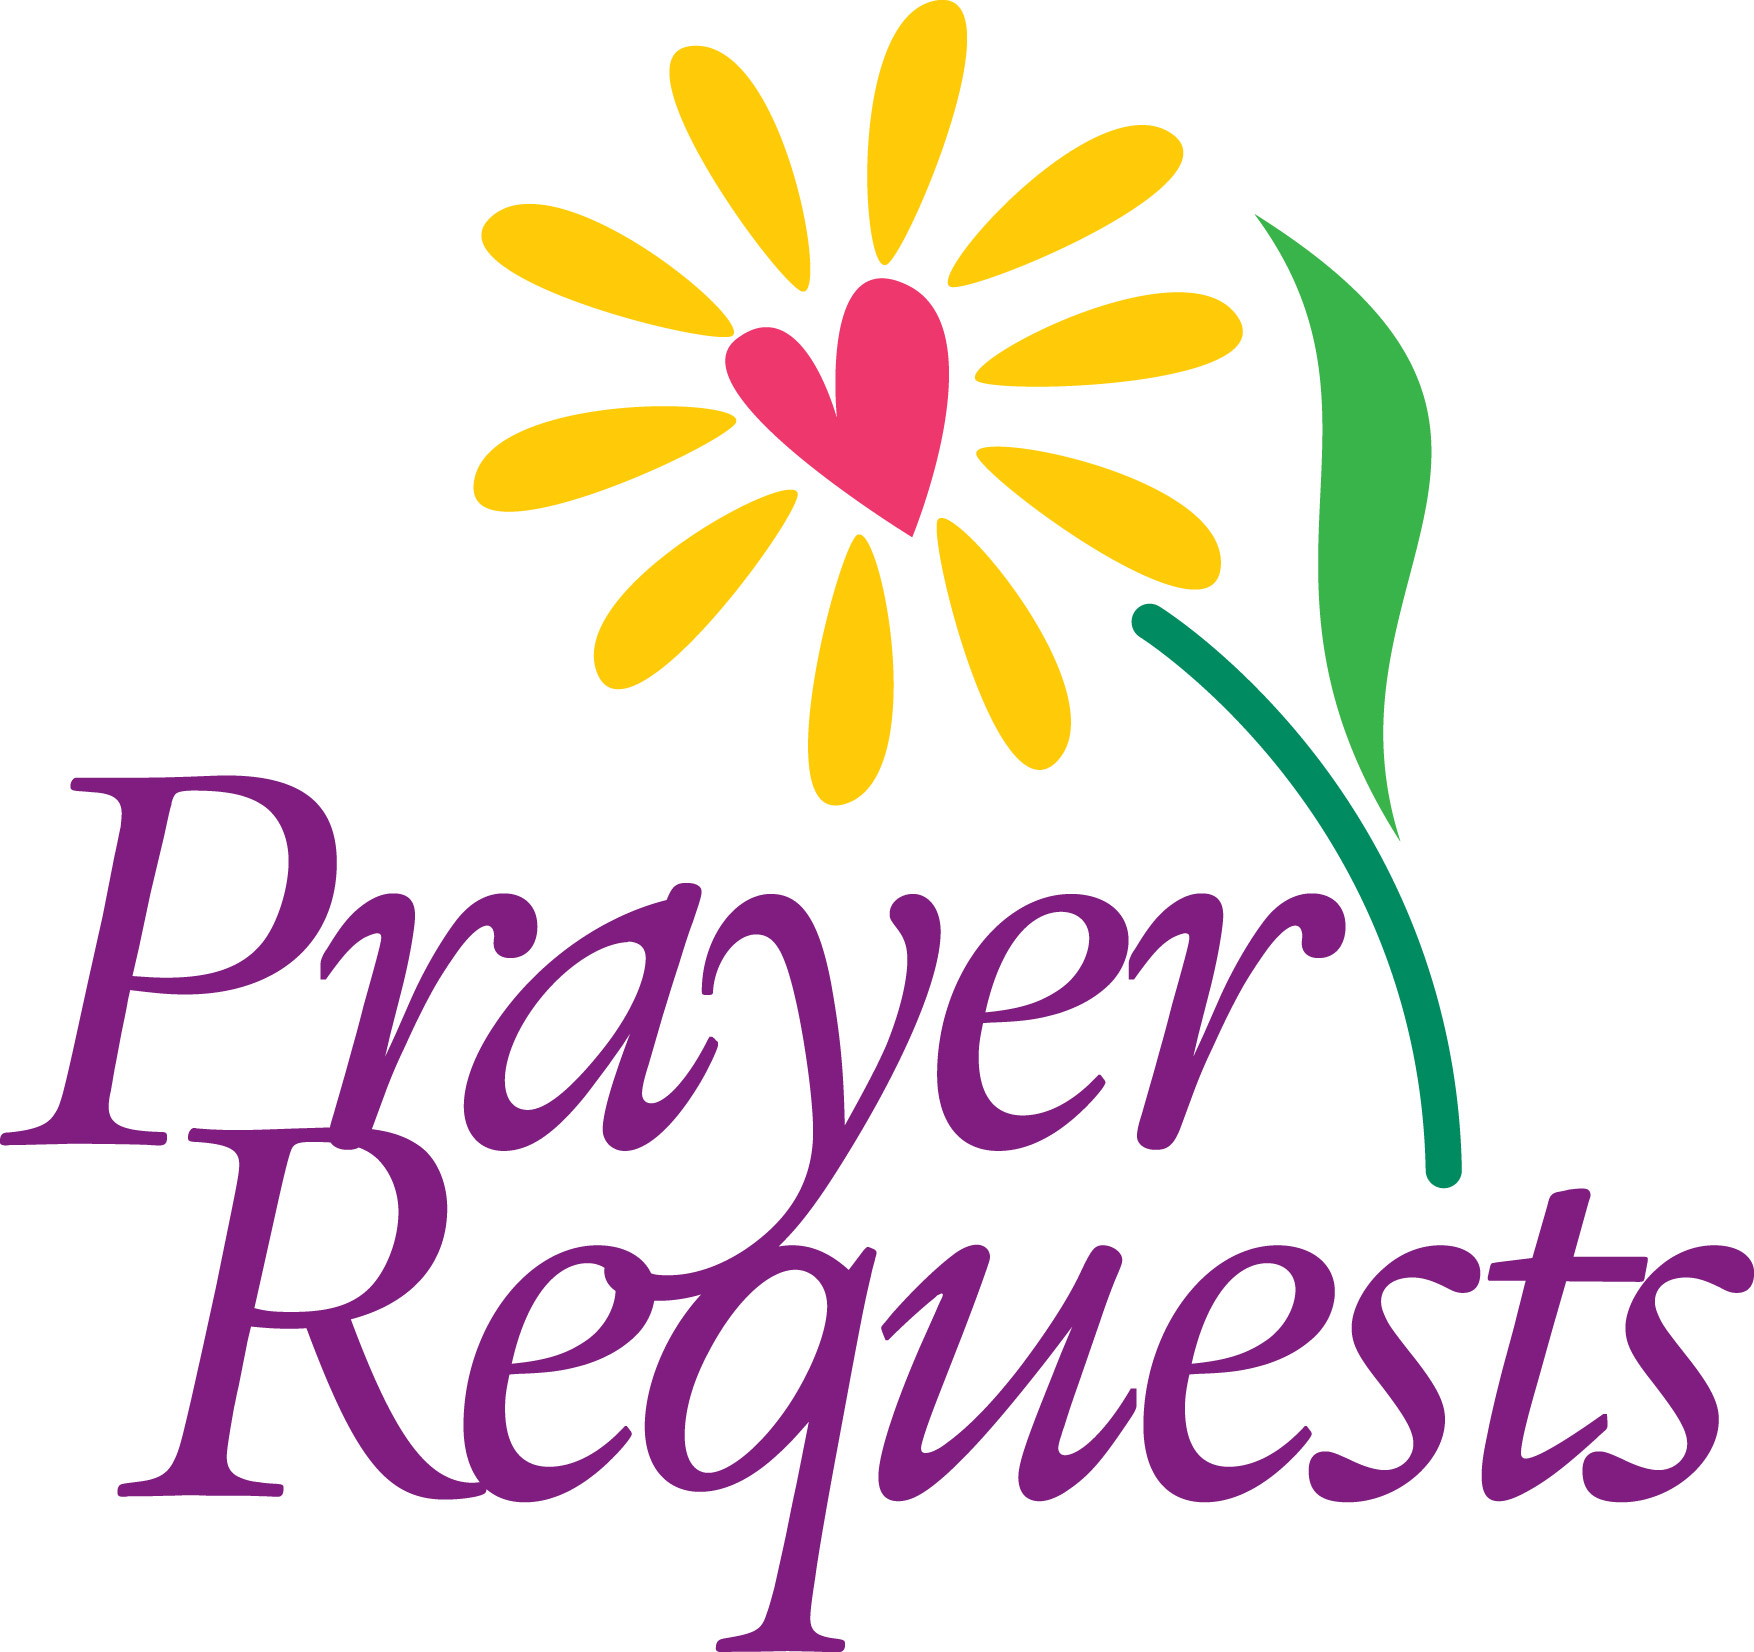 free prayer request clip art free image rh pixy org free prayer clip art images copy and paste free prayer clip art images